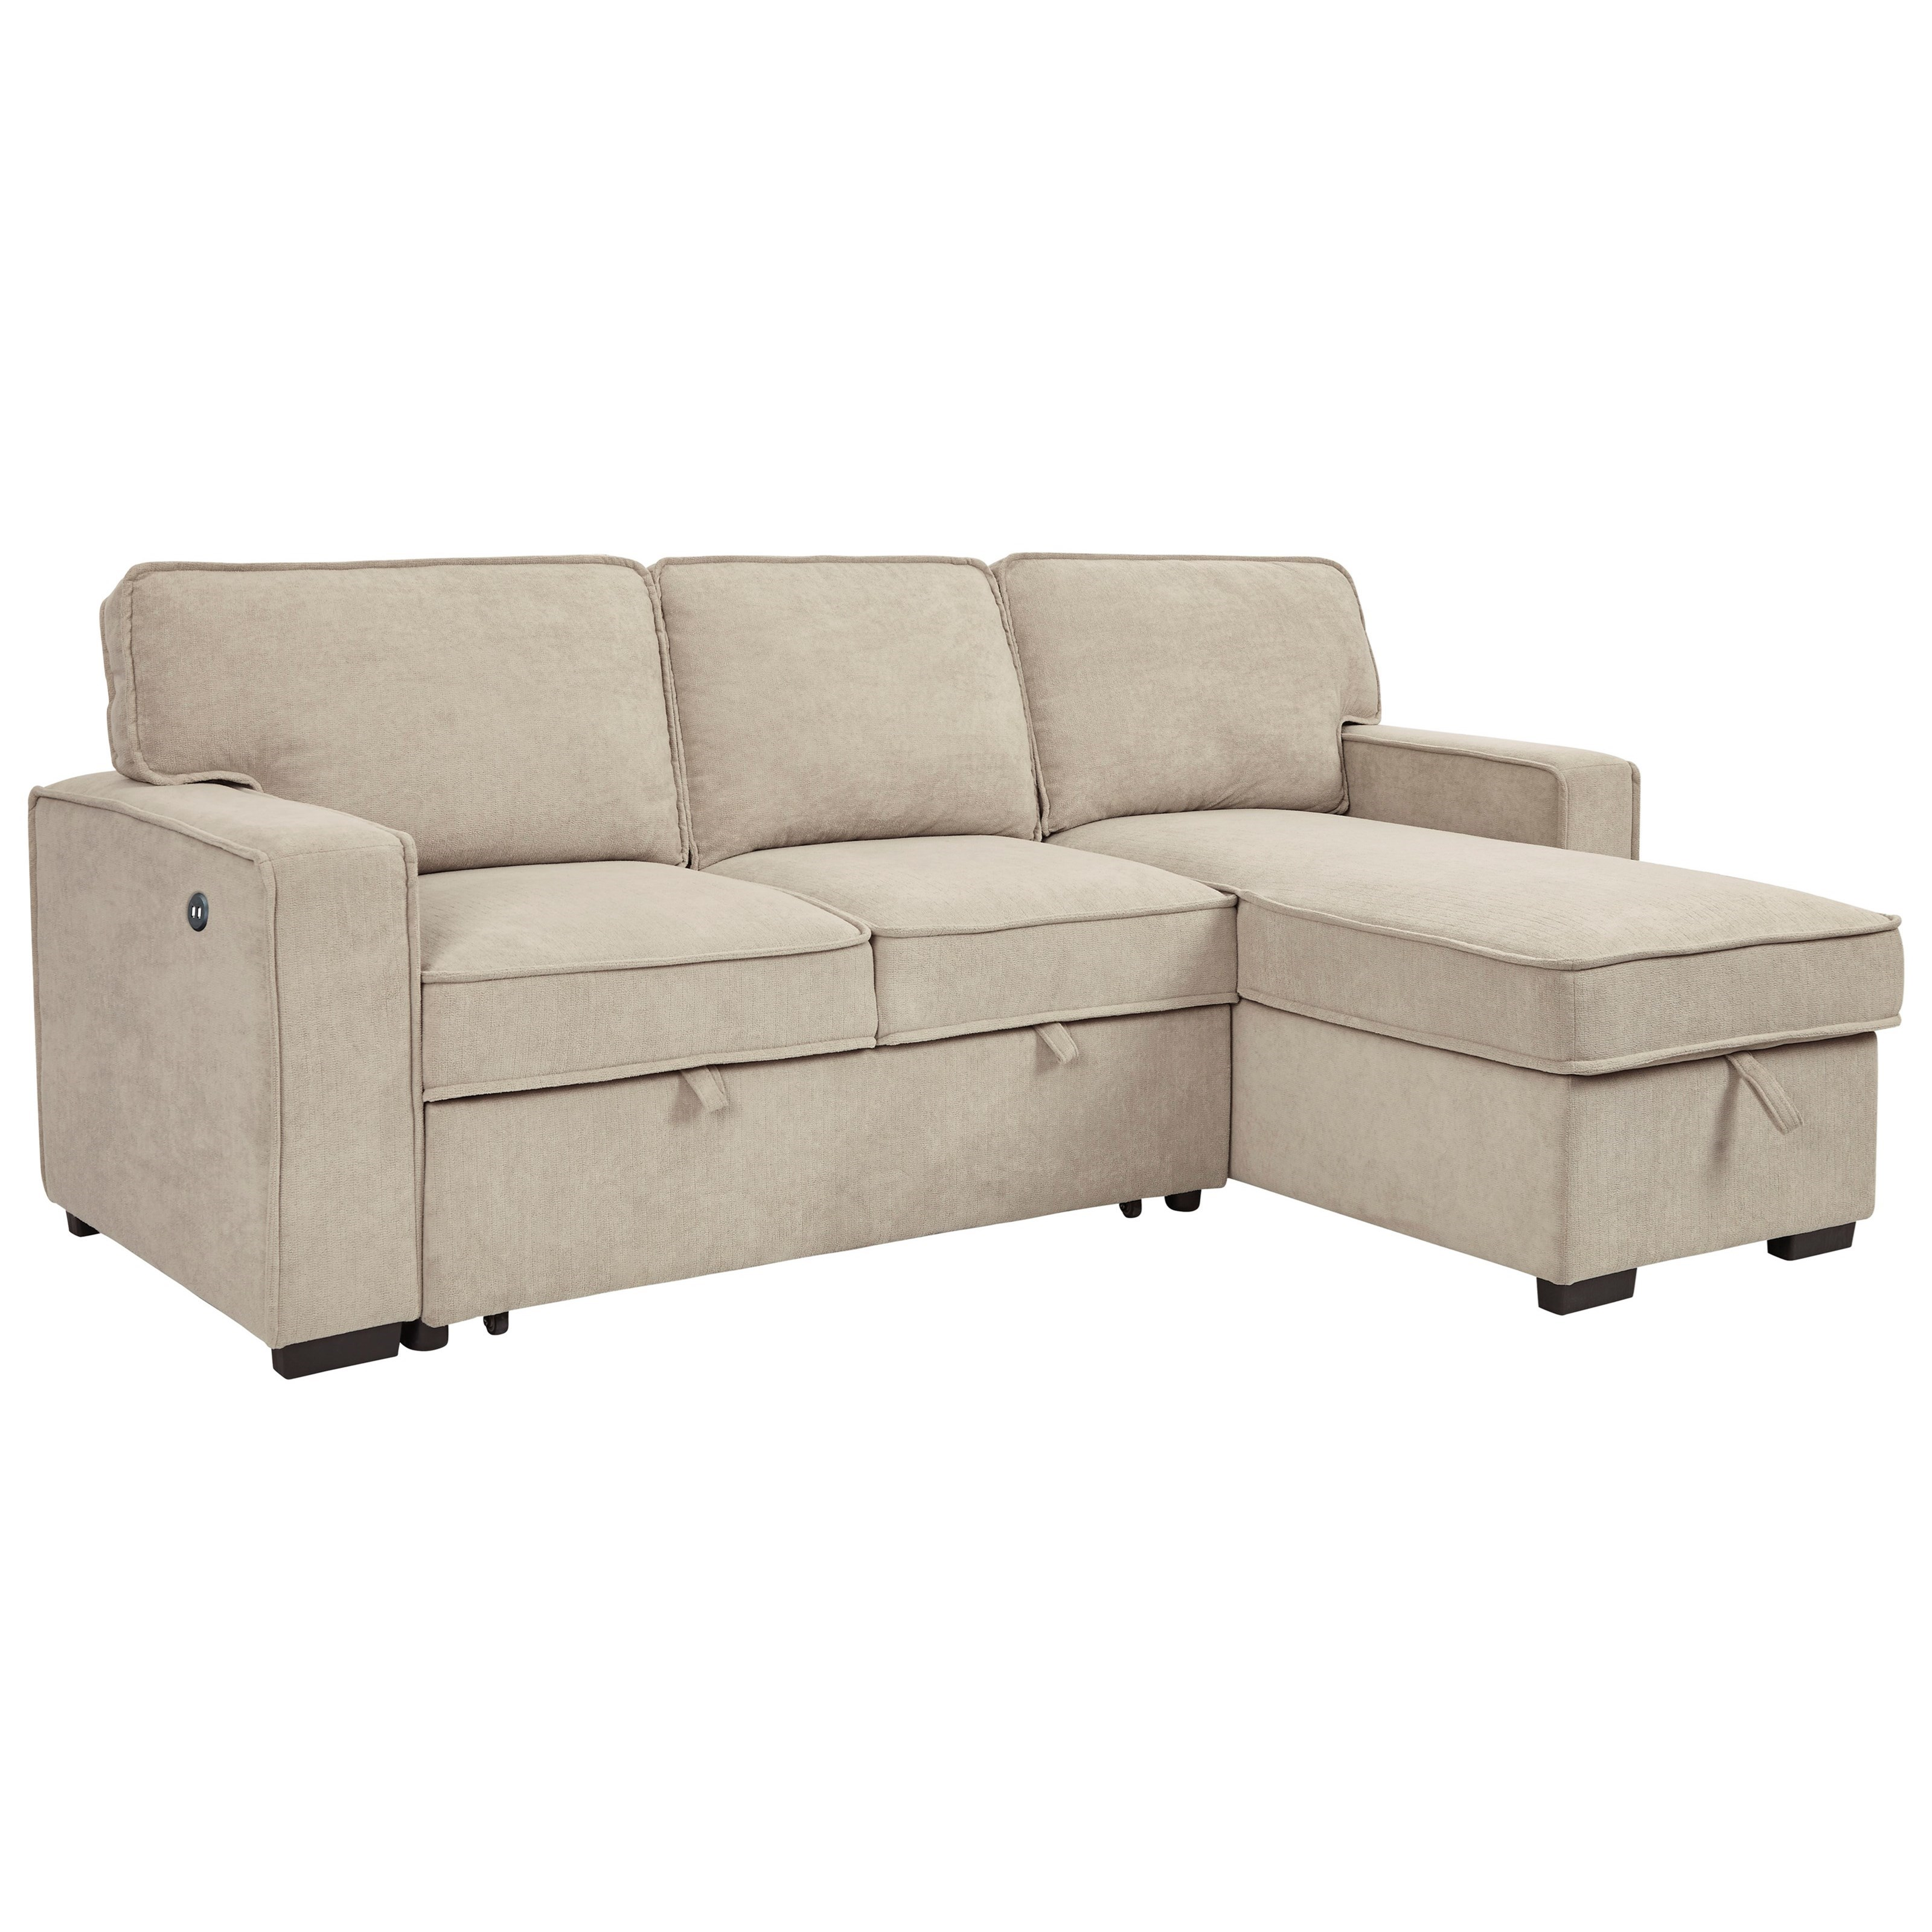 darton sofa chaise with pop up bed storage chaise